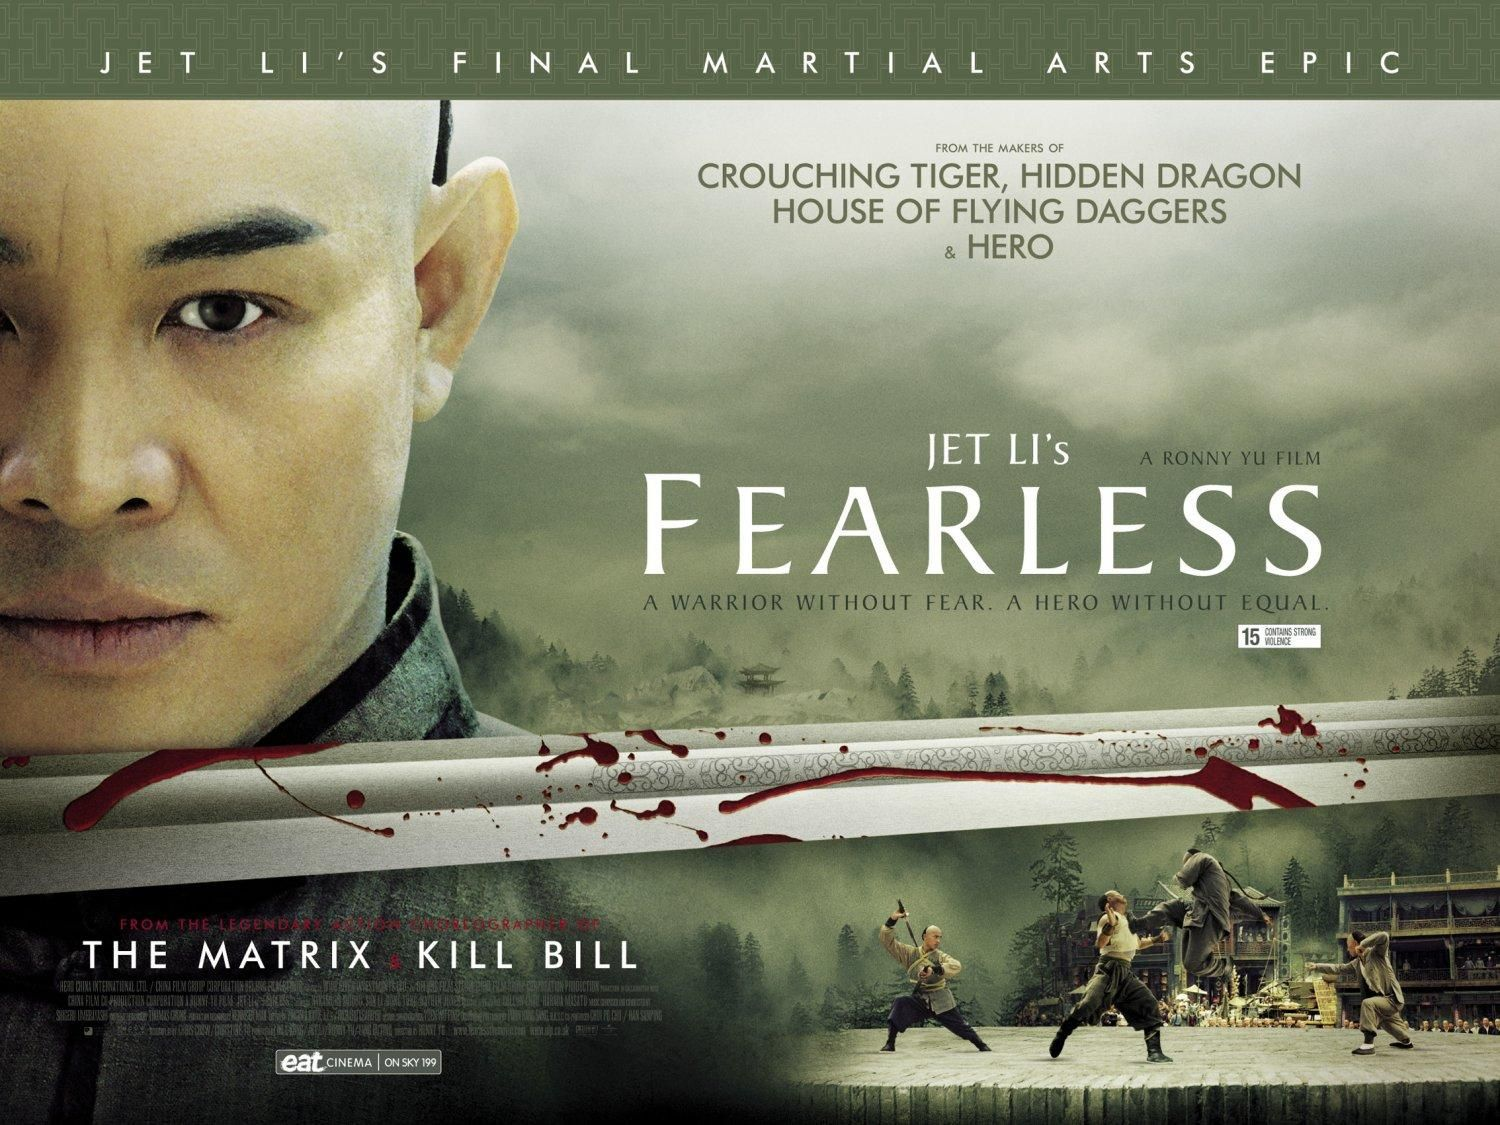 Huo Yuan Jia Poster6 More Movie Posters Fearless Movie Martial Arts Movies Jet Li